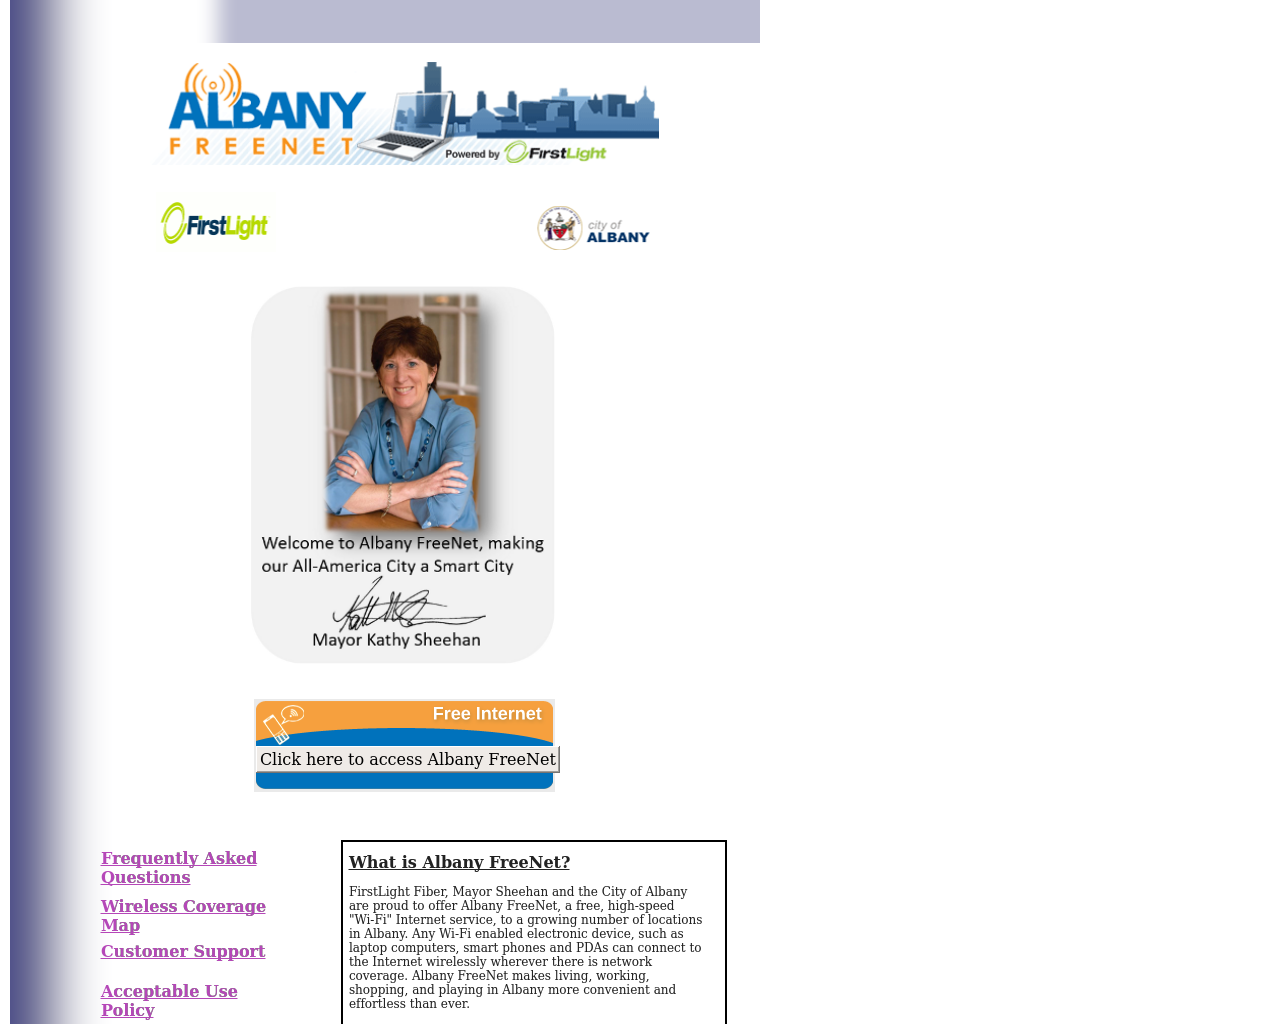 Albany-Freenet-Advertising-Reviews-Pricing